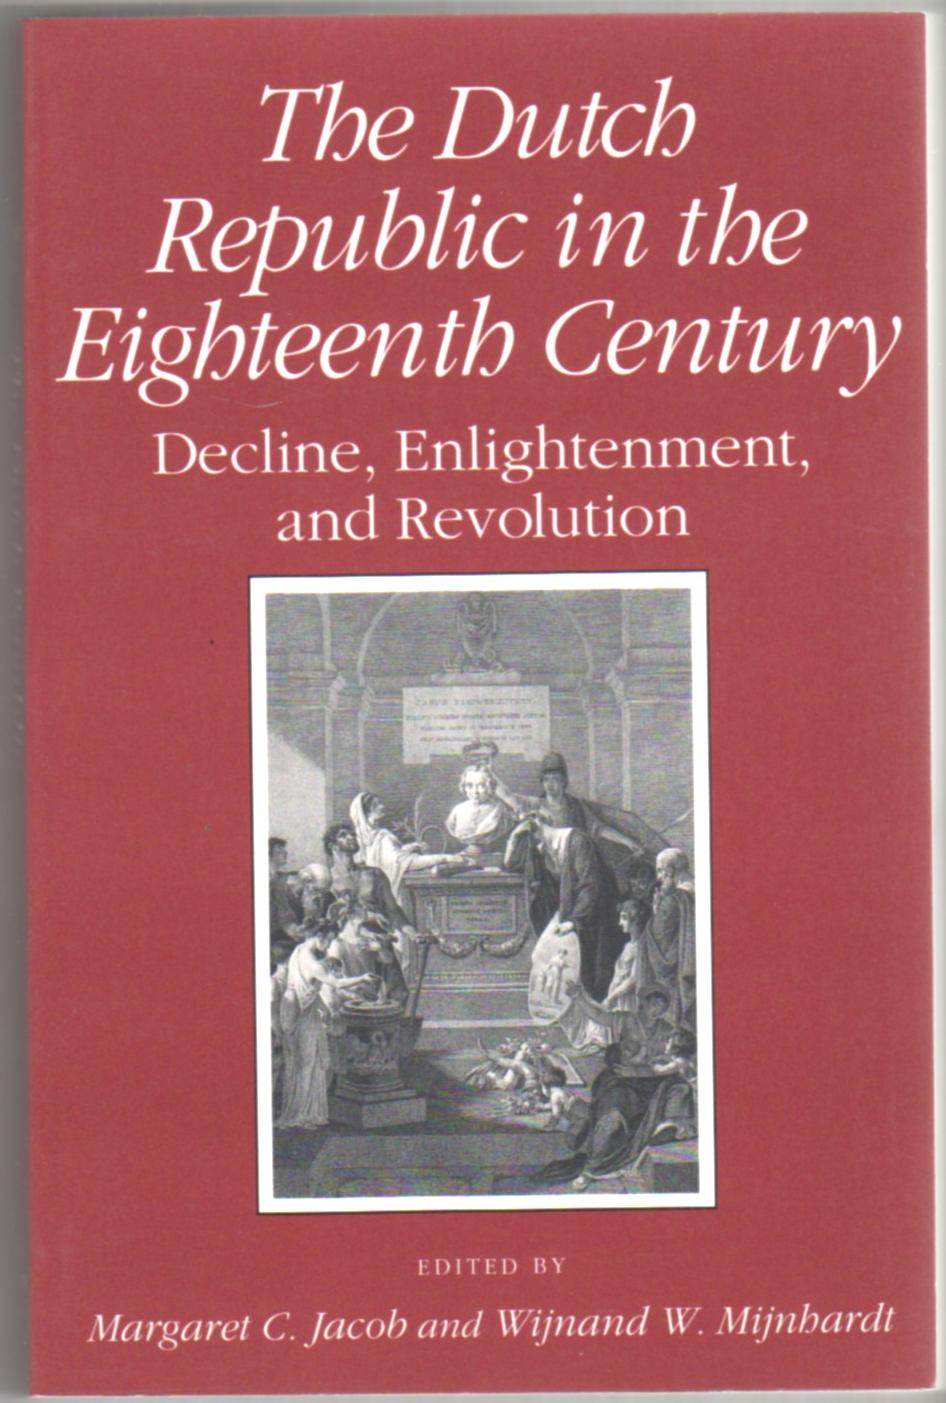 Image for The Dutch Republic in the Eighteenth Century: Decline, Enlightenment, and Revolution